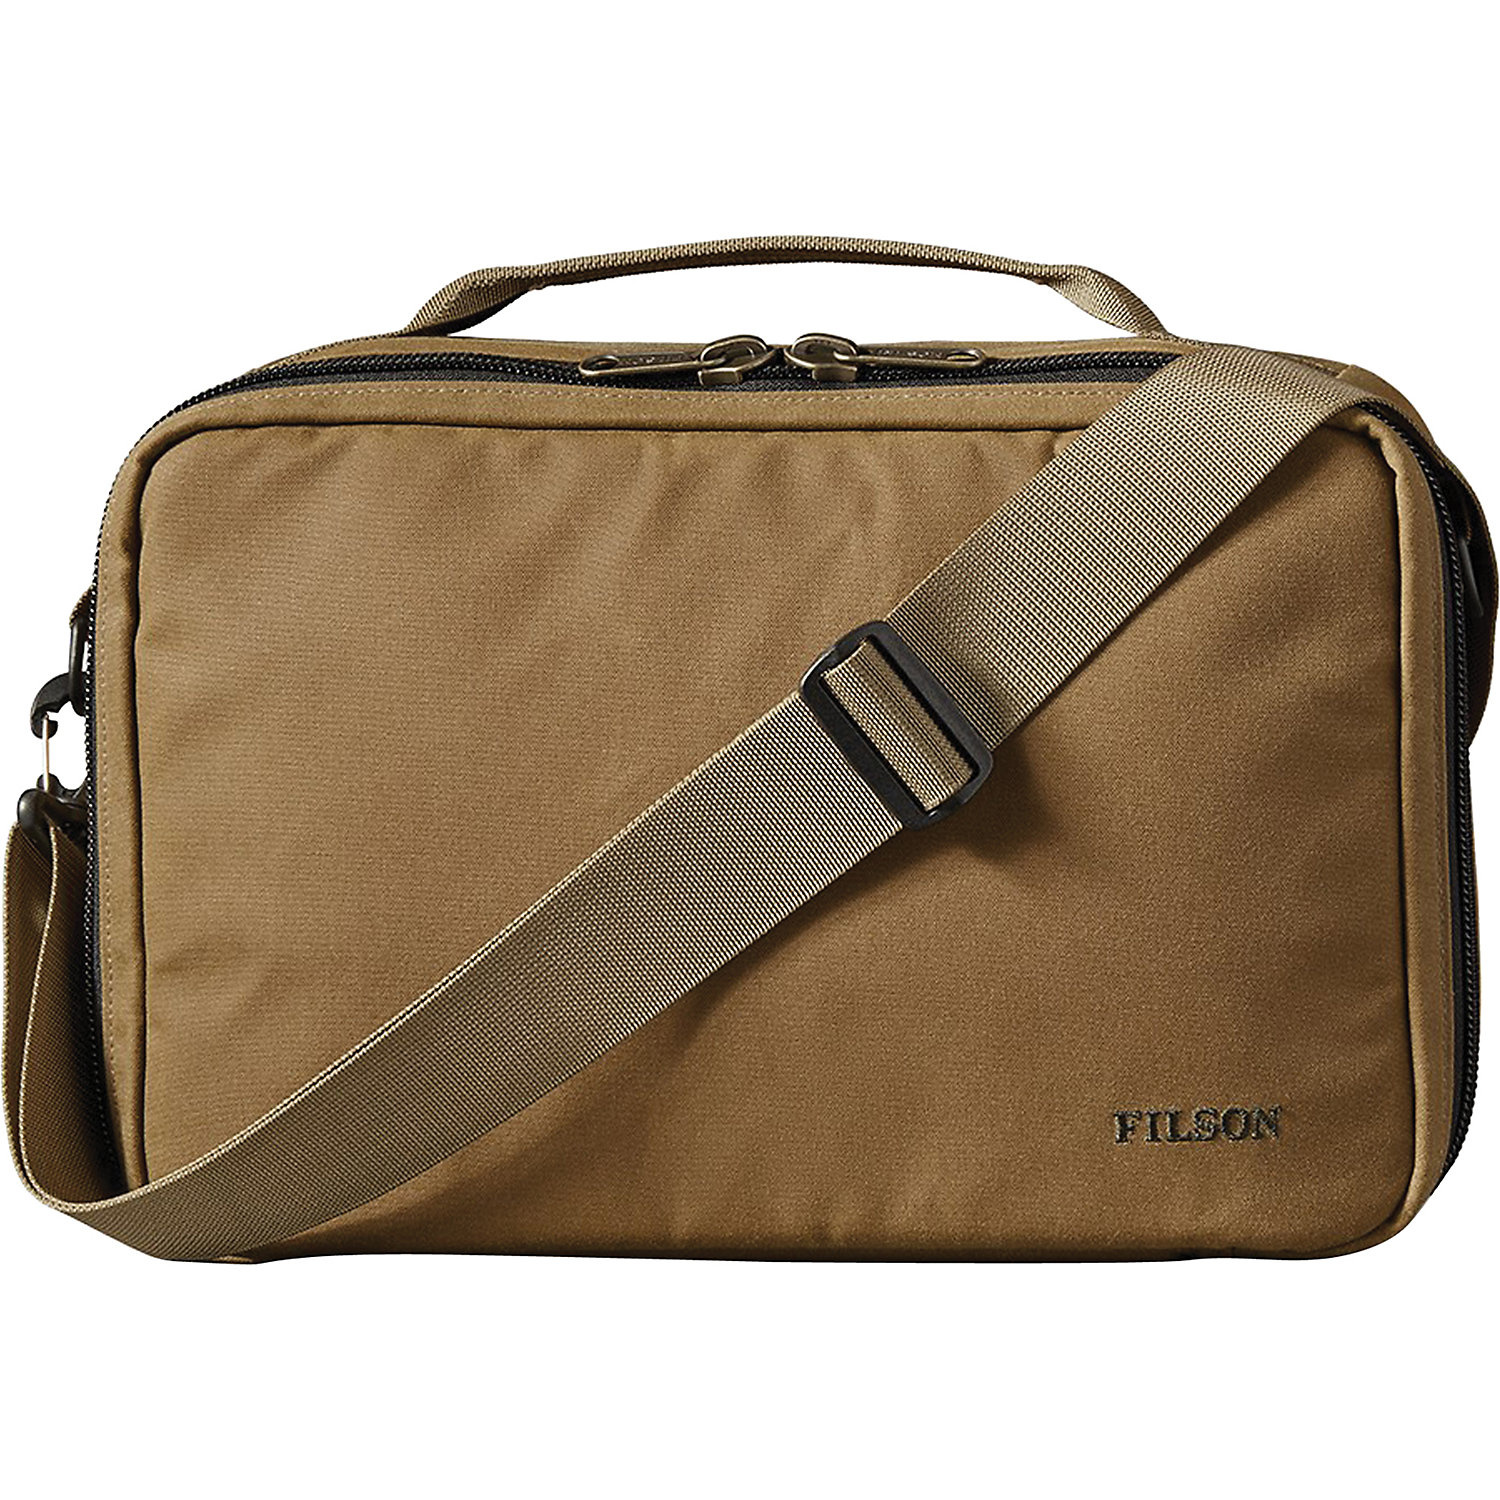 FILSON Reel Case Dark Tan One Size 1st Quality Standard